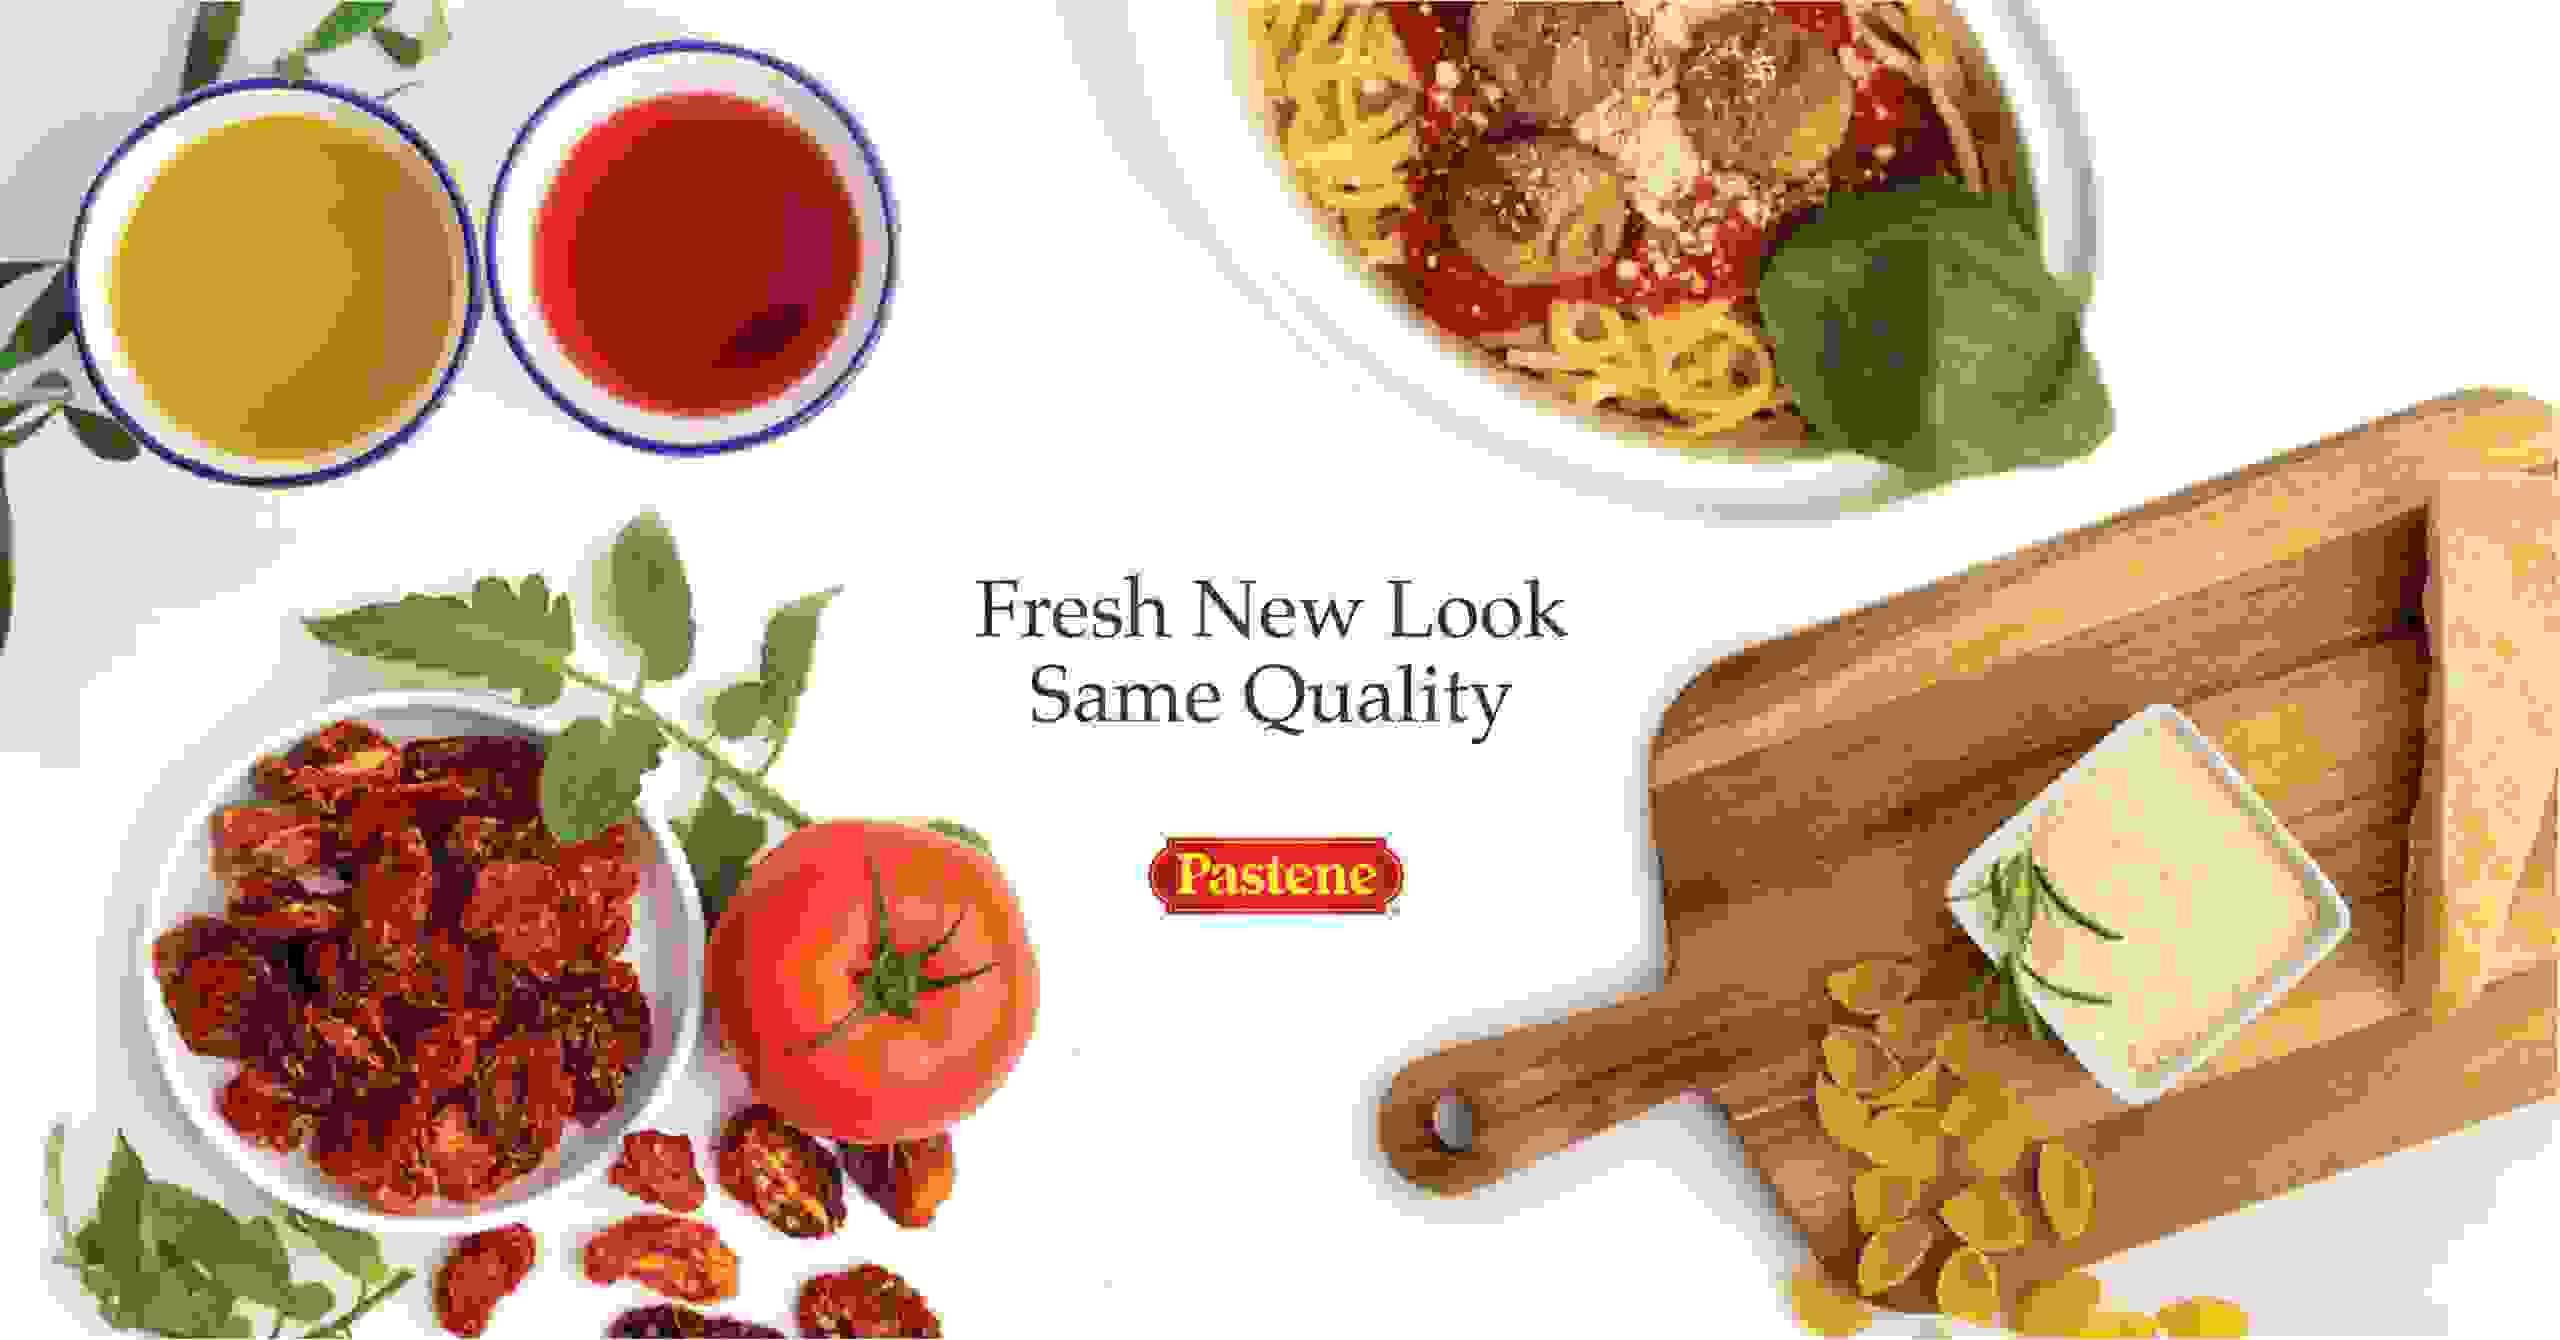 Pastene Iconic Purveyor Of Authentic Italian Foods Launches Dynamic New E-Commerce Website